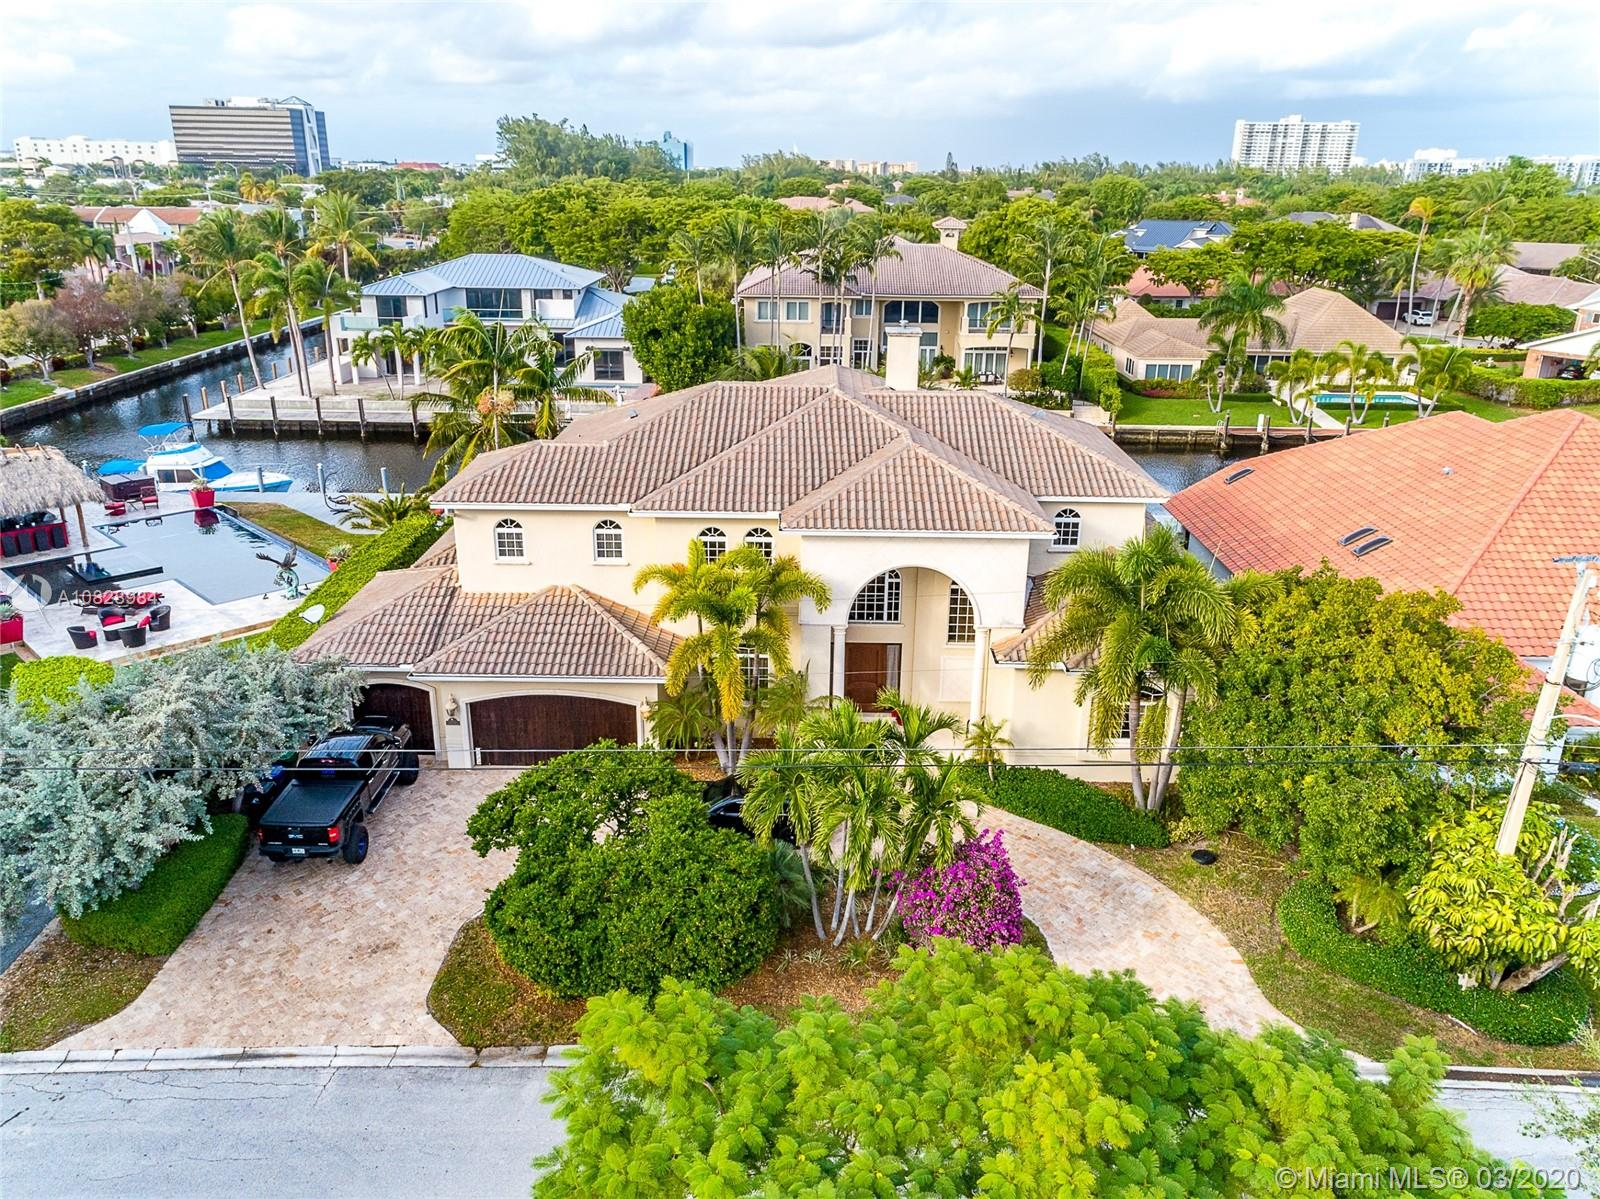 Gorgeous 2-story home. Wood dock with 100 feet of deep water, no fixed bridges. 6 BR, 6.5 BA. 6355 SF. 11,000 SF lot. 3 Car garage, elevator. Gourmet kitchen with eat in area, family room overlooking the water, 2 laundry room.Master suite and office downstairs. master suite with sitting area and morning bar, upstairs 4 additional bedrooms, large covered terrace with water view and loft area. salt water pool, spa & summer kitchen. Entire house freshly painted, new A/C and newly redone, landscape throughout. 5 mins to one of the best private schools Pine Crest.